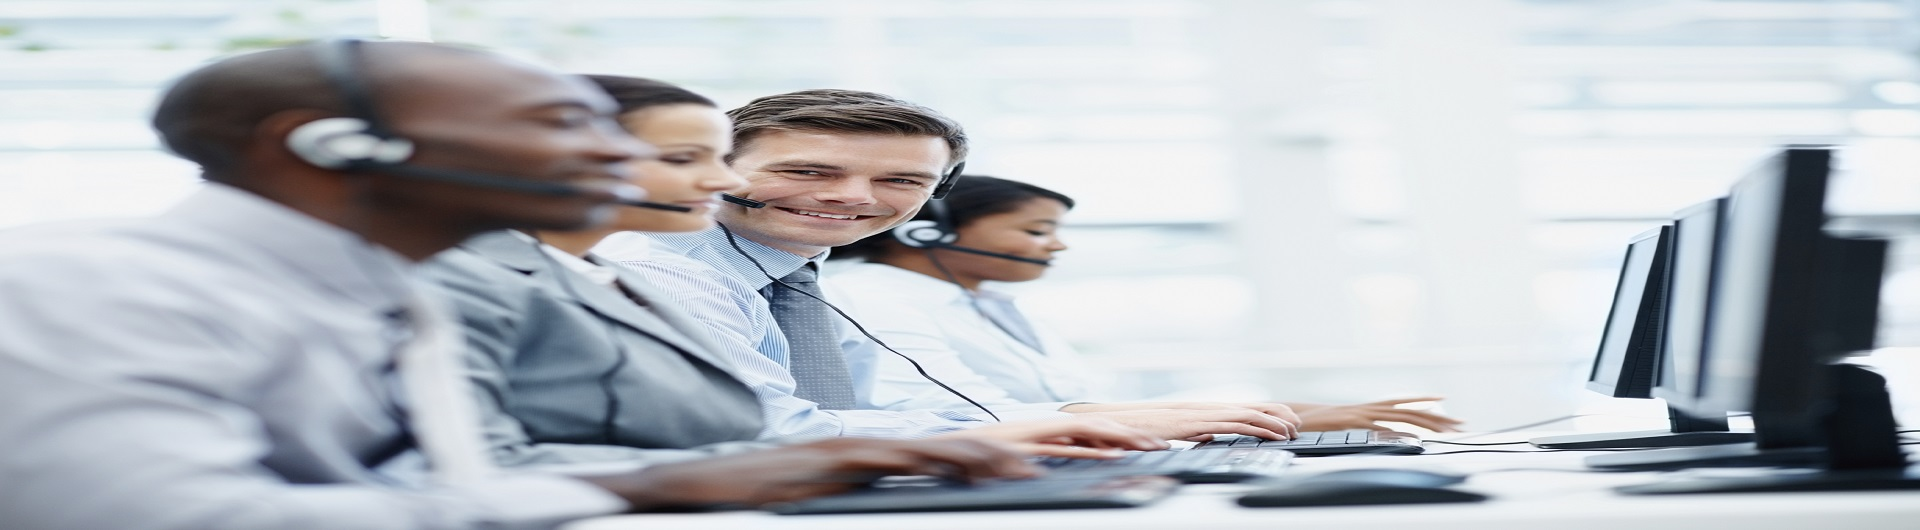 Portrait of business people working in front of computer with headphones